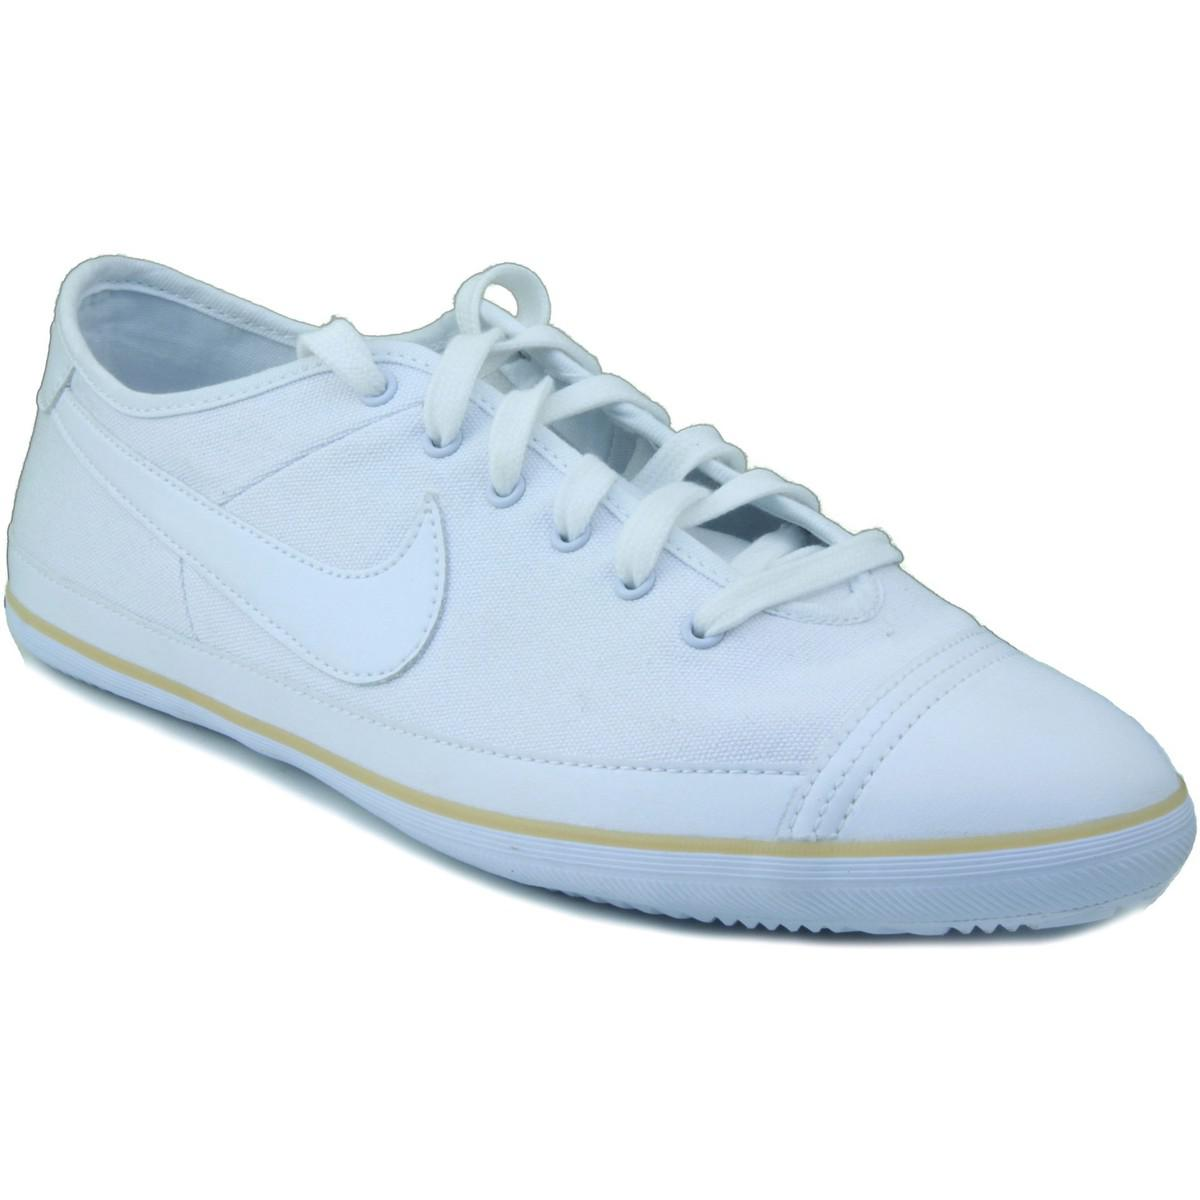 Todos compacto tragedia  Nike Flash Men's Shoes (trainers) In White for Men - Lyst